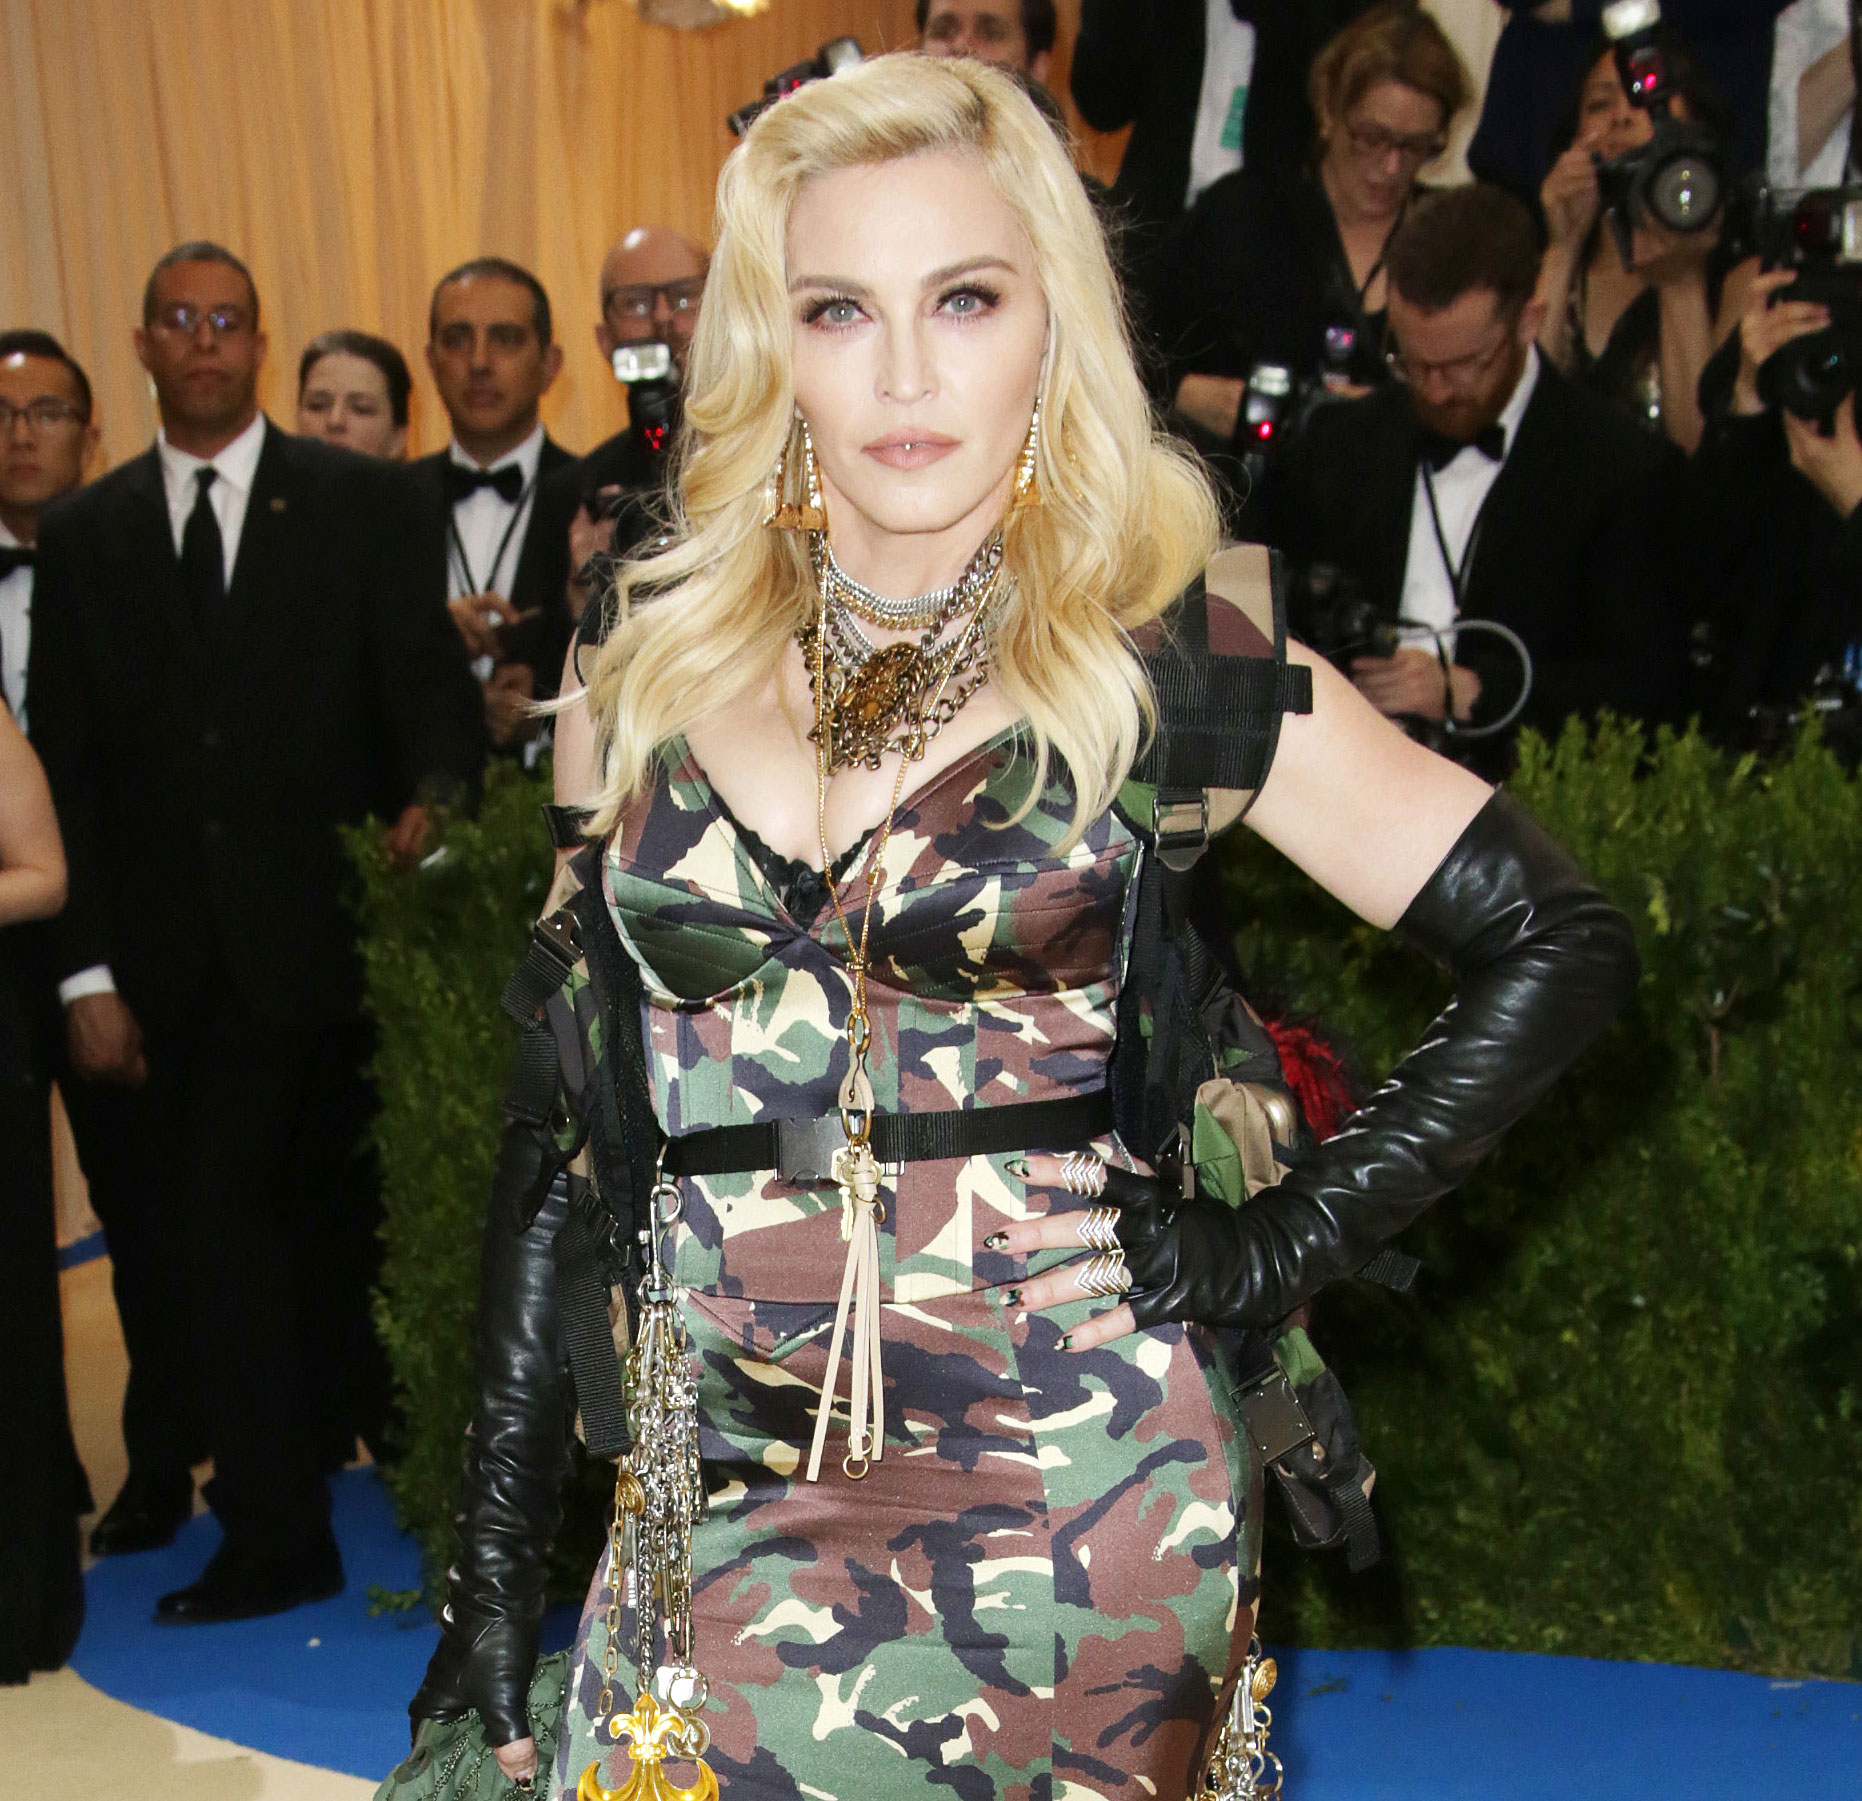 Madonna Faces Backlash for Tone Deaf Video of Son David Banda Dancing to Honor George Floyd